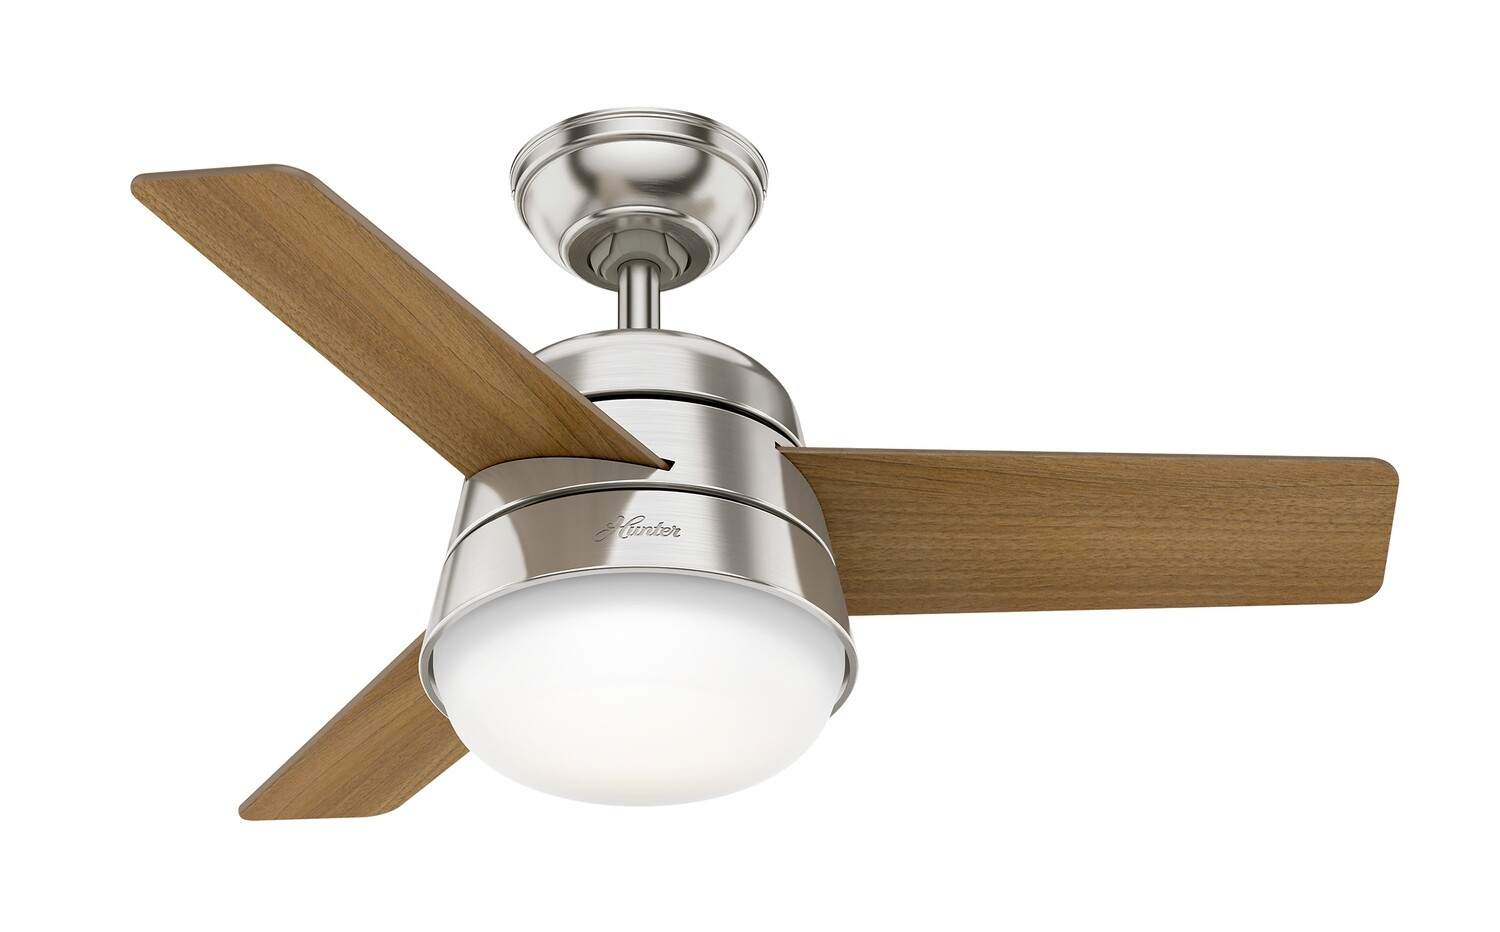 HUNTER FINLEY 91 BN ceiling fan Ø91 cm Fresh White with Fresh Walnut / Natural Wood blades with remote control and light kit included